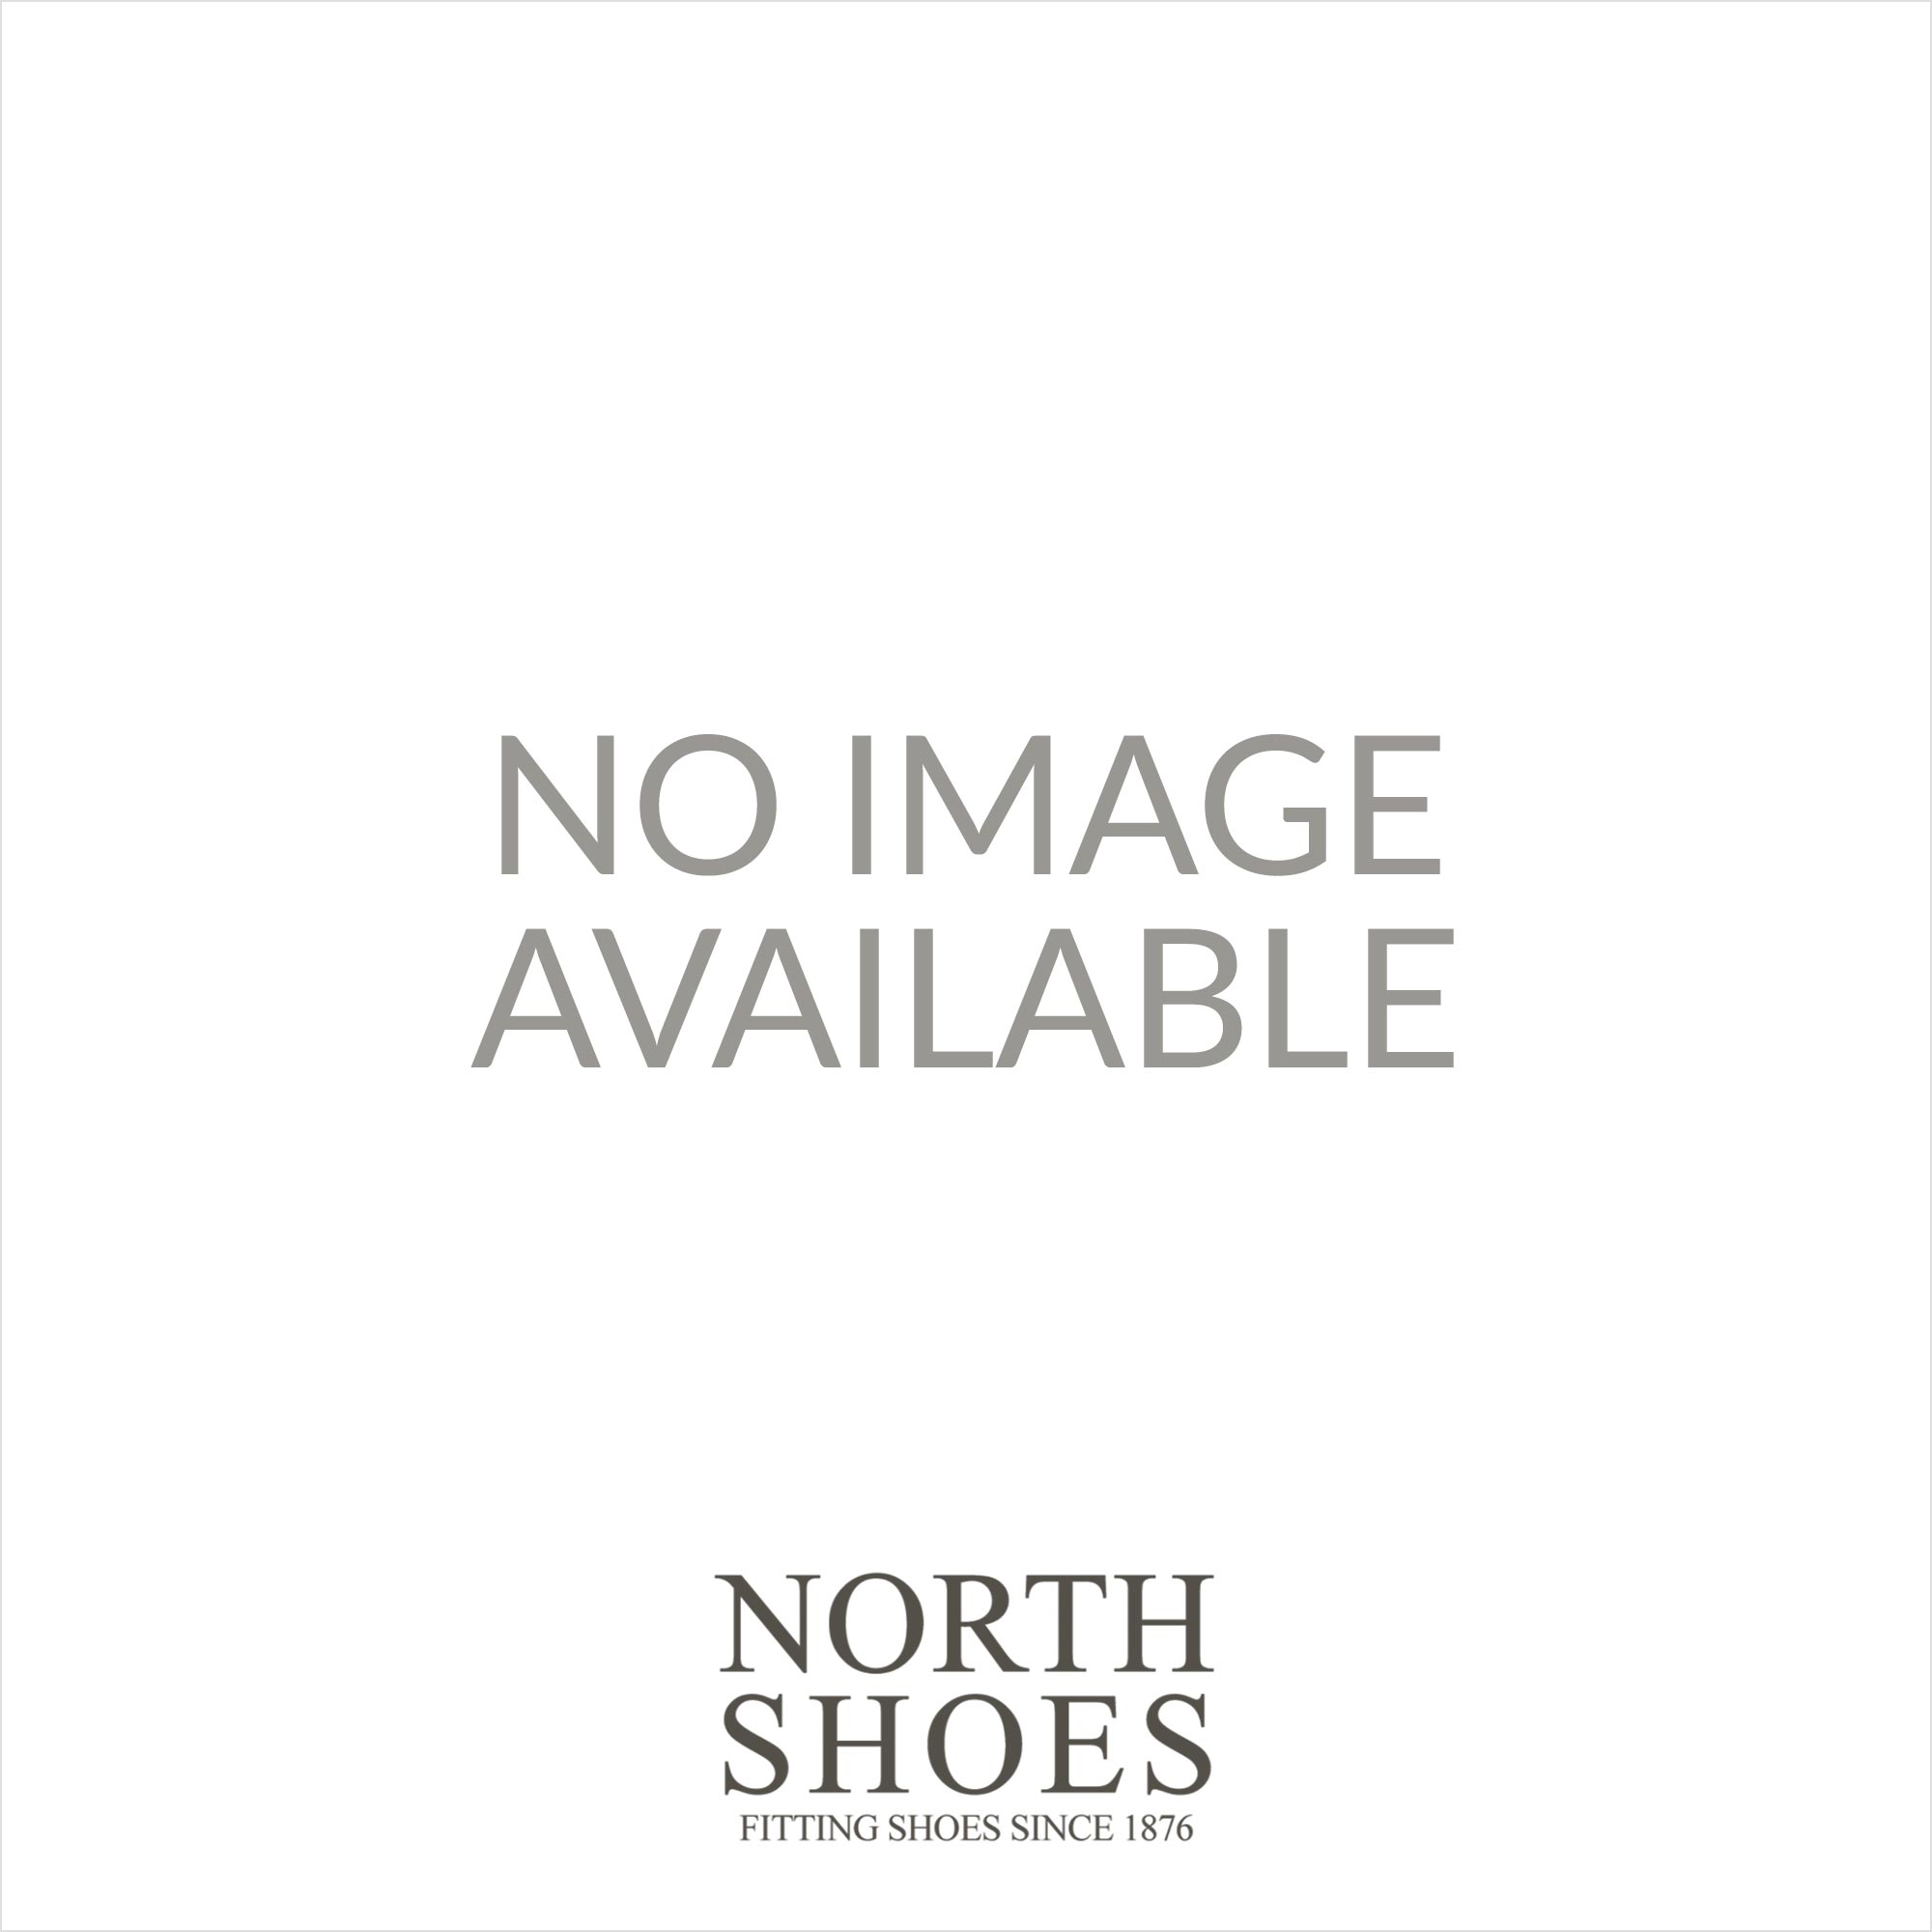 bbdbe3a67a1ae Clarks Perri Dunes Black Snake Effect Suede Leather Womens Slingback Strappy  Sandal - Clarks from North Shoes UK